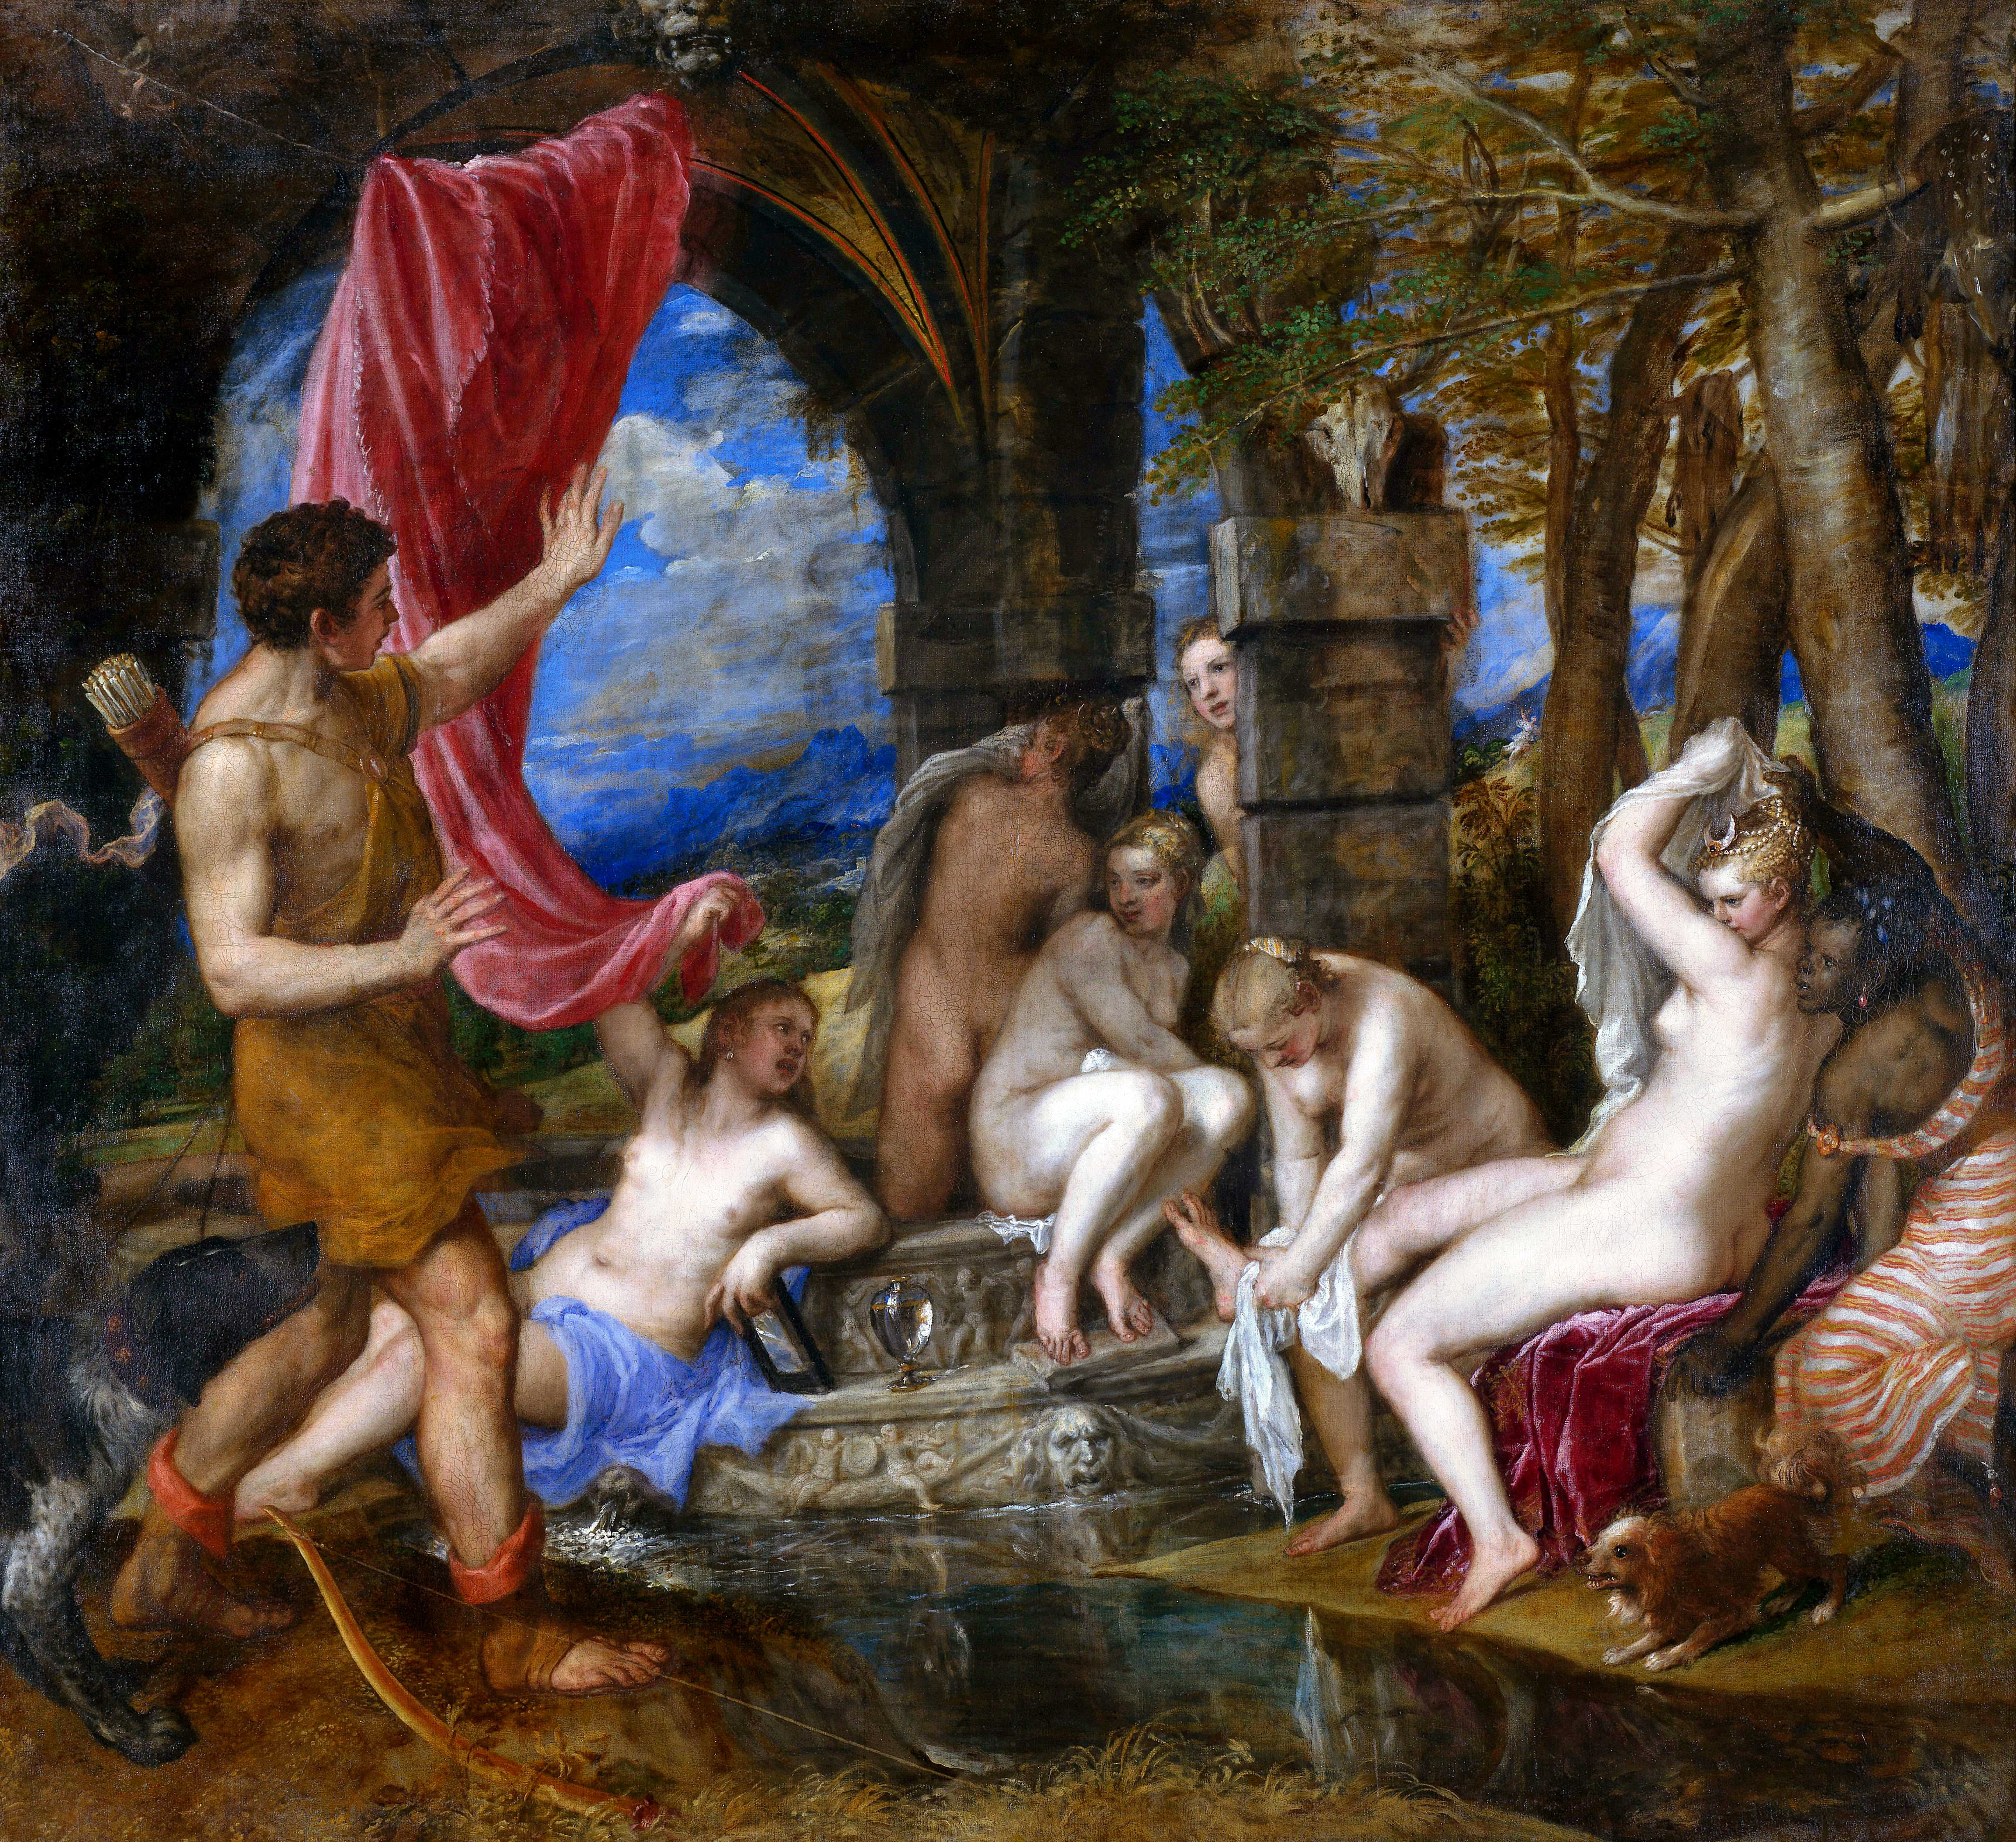 Diana Actaeon, by Titian, 1550s {2}